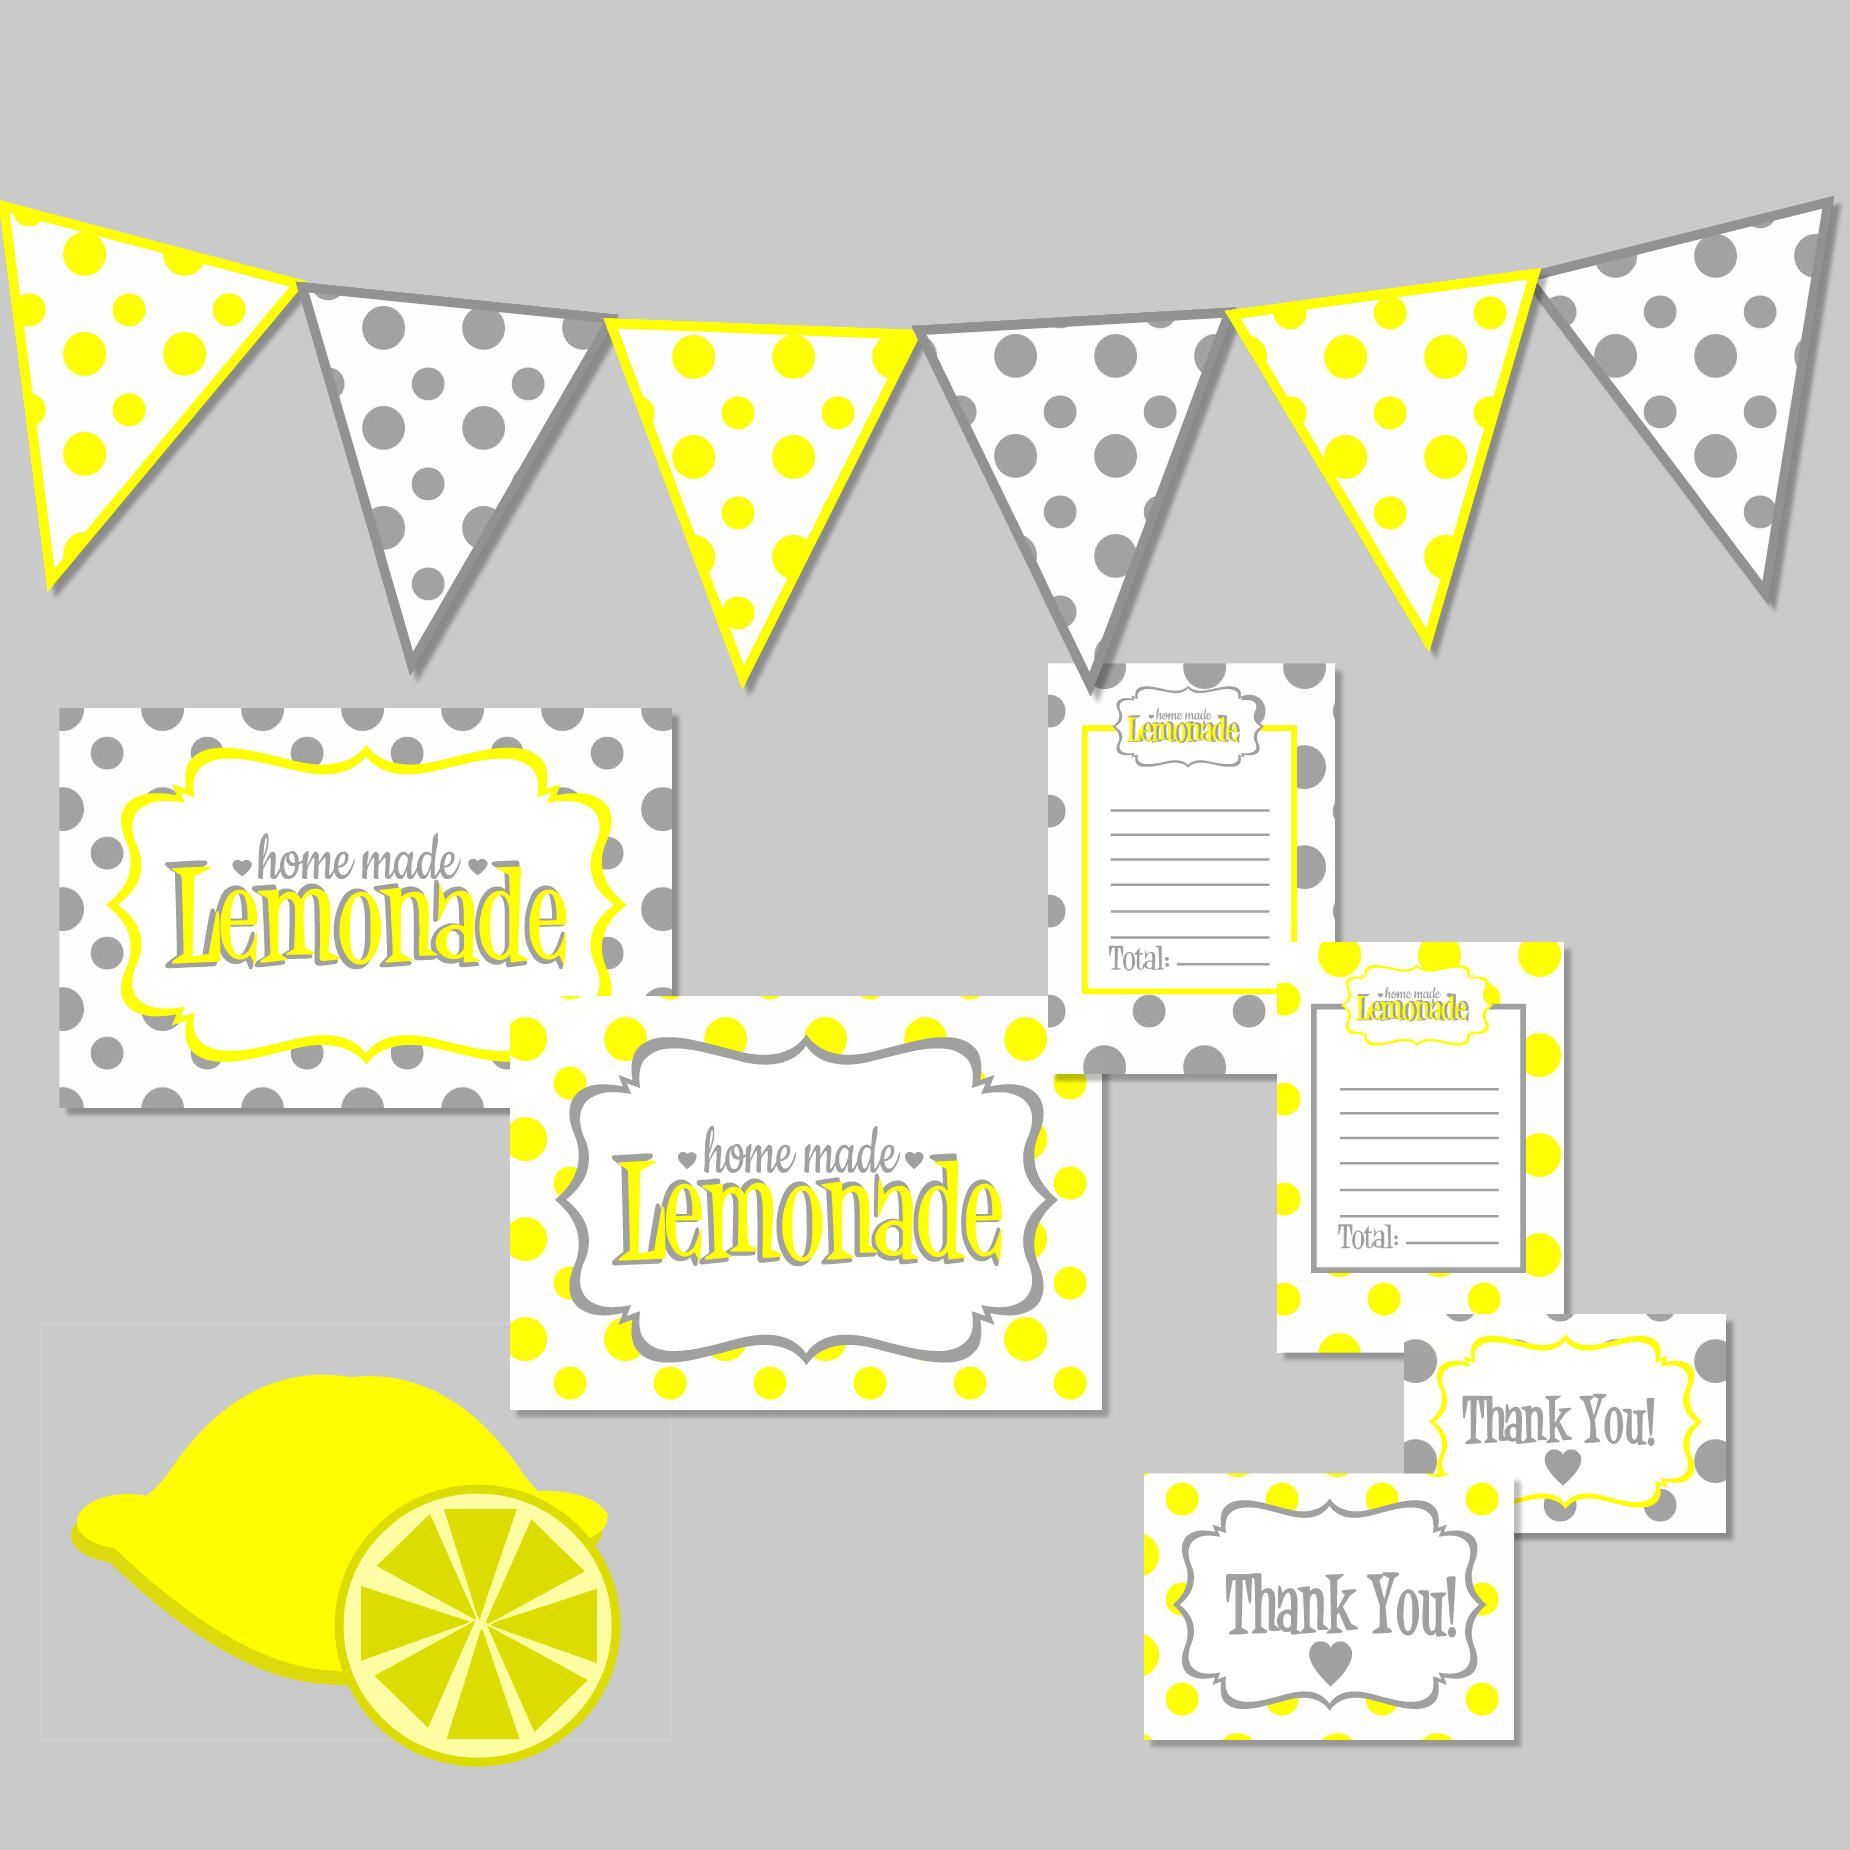 Lemonade Stand Kit Free Printable Digital Download From Maaddhappy Comes With Banner Lemonade